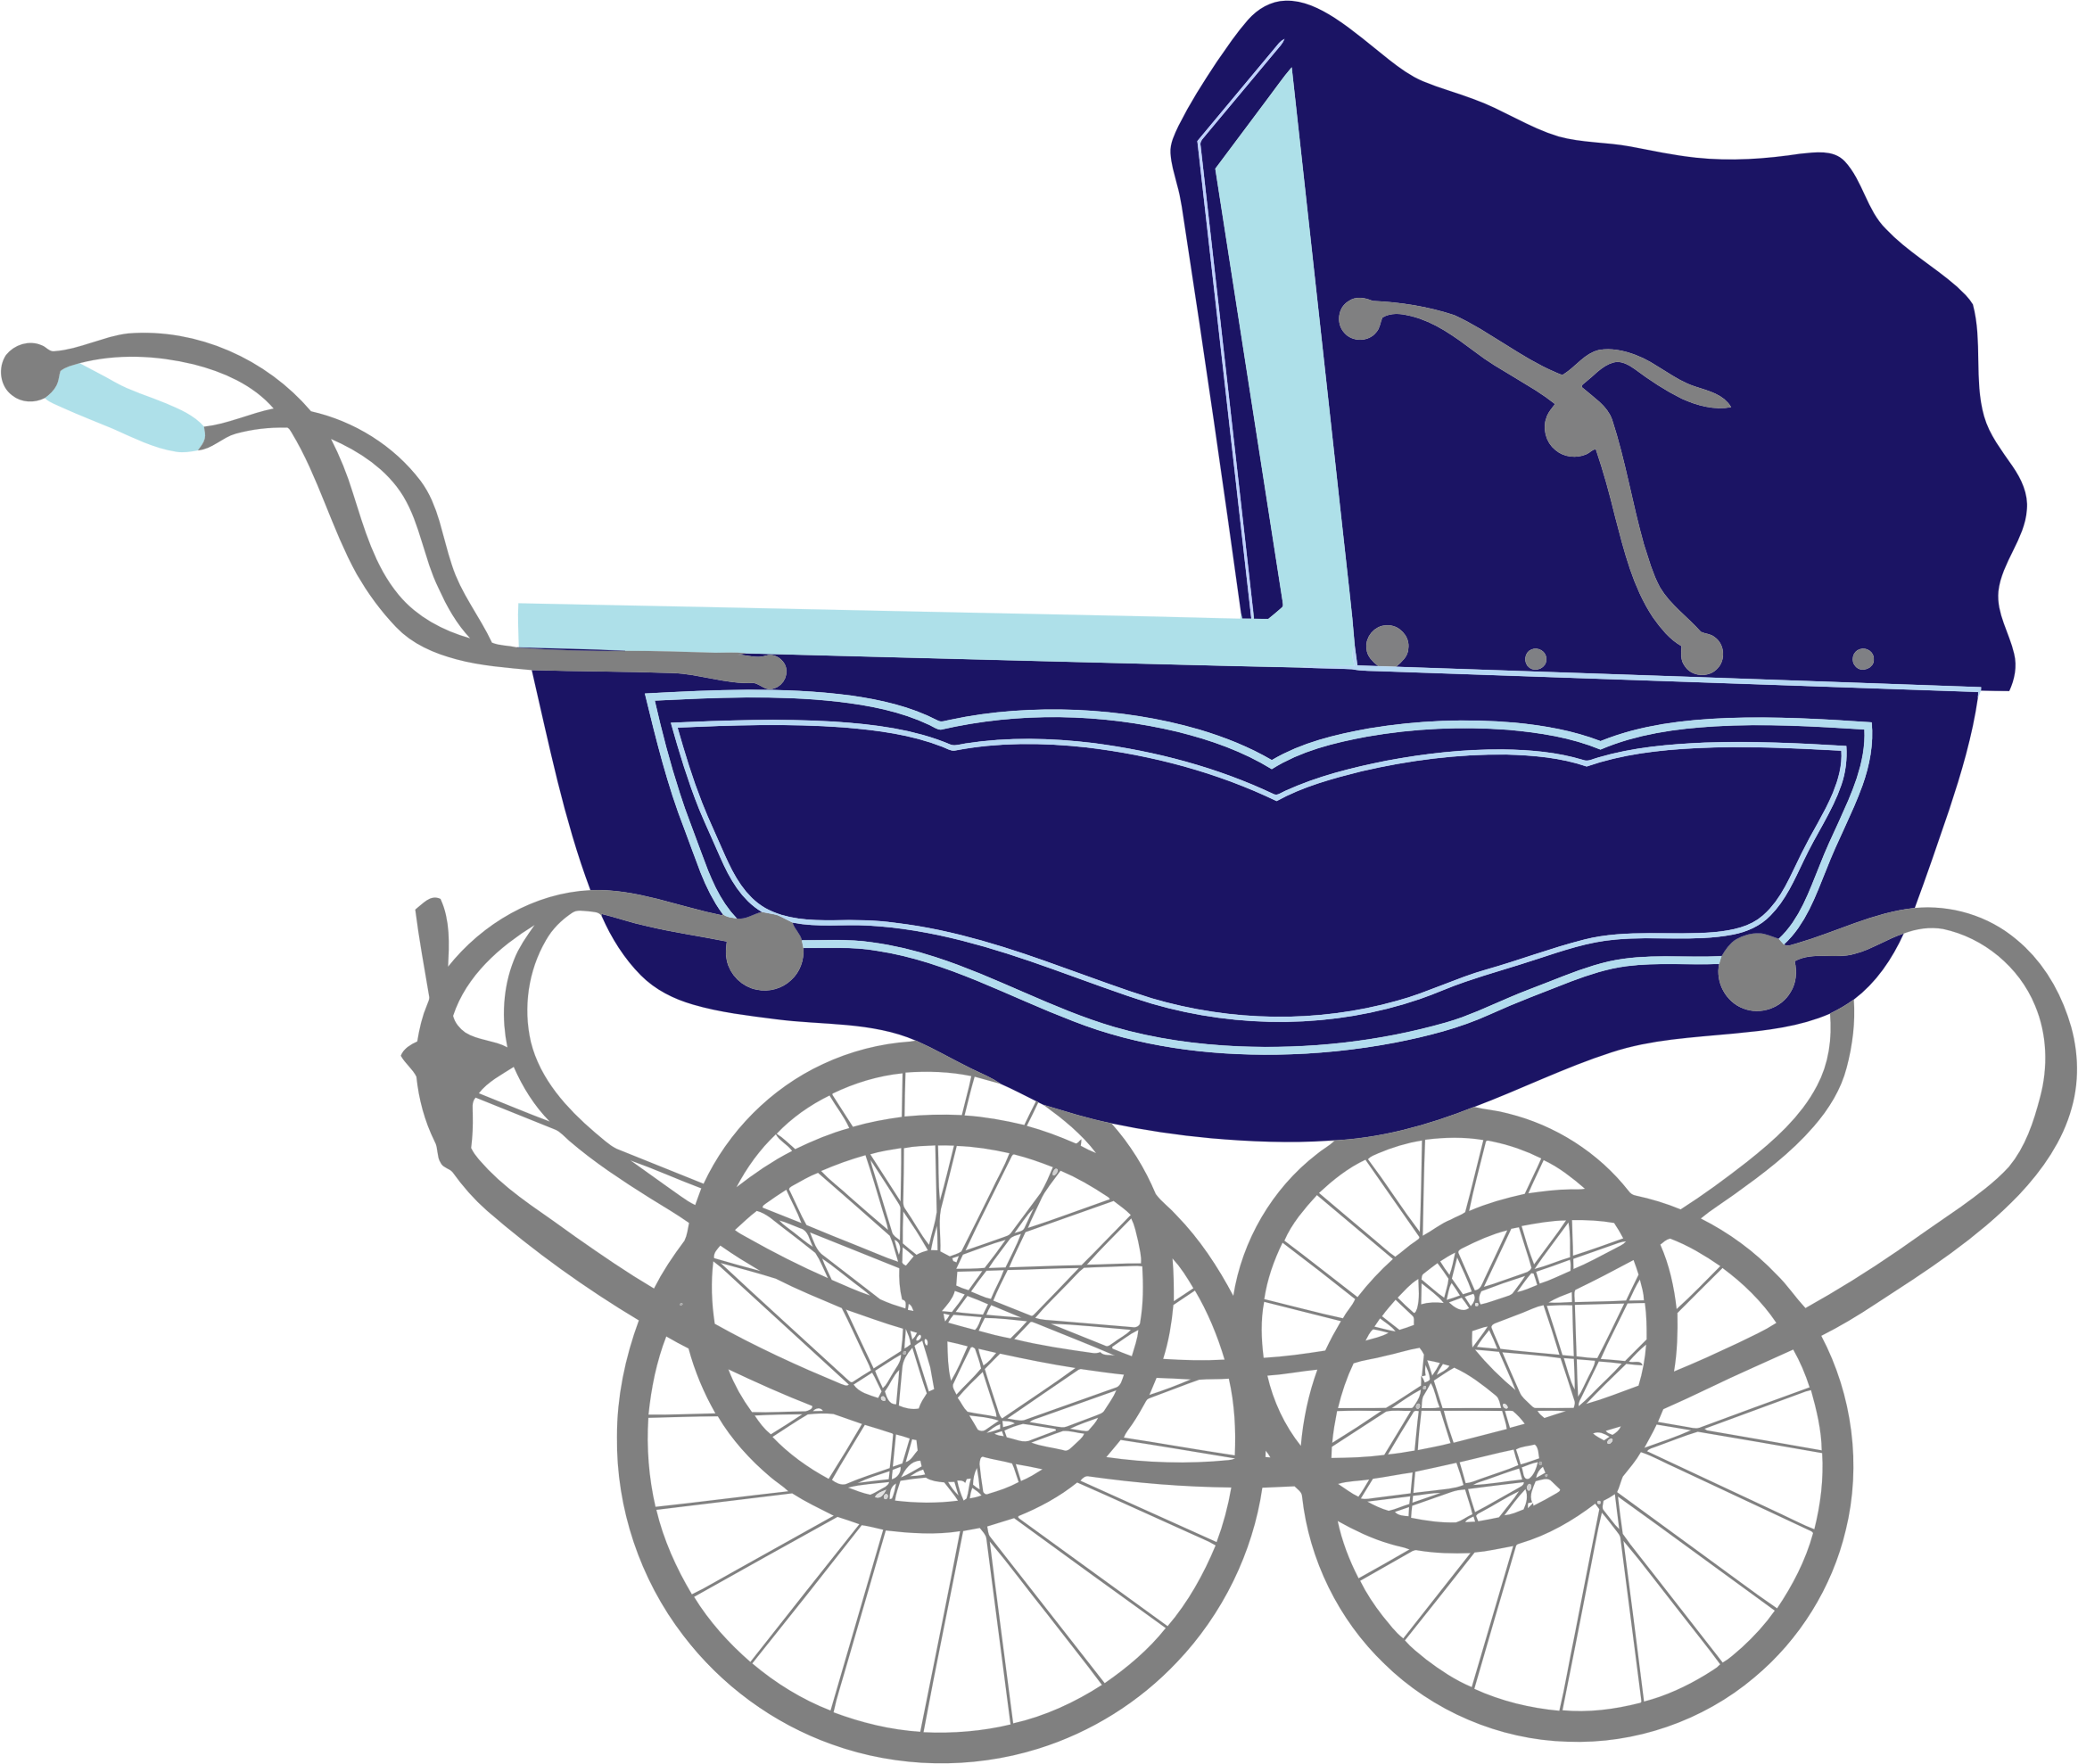 Blue baby stroller carriage. Wagon clipart vintage